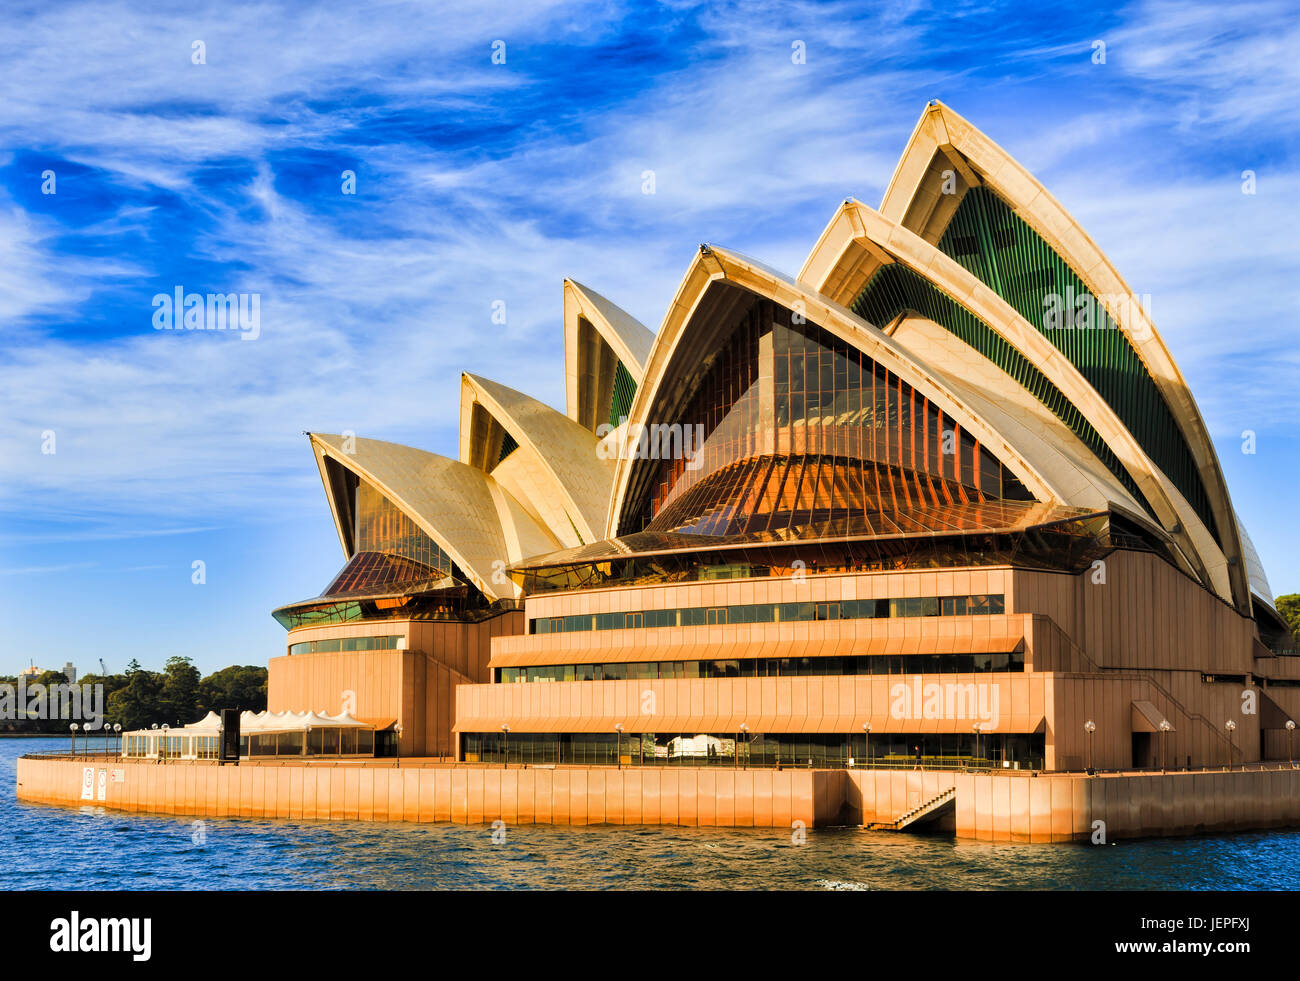 Sydney, AUstralia - 24 June 2017: Sydney Opera house on a bright sunny day rising from Sydney harbour waters in Stock Photo